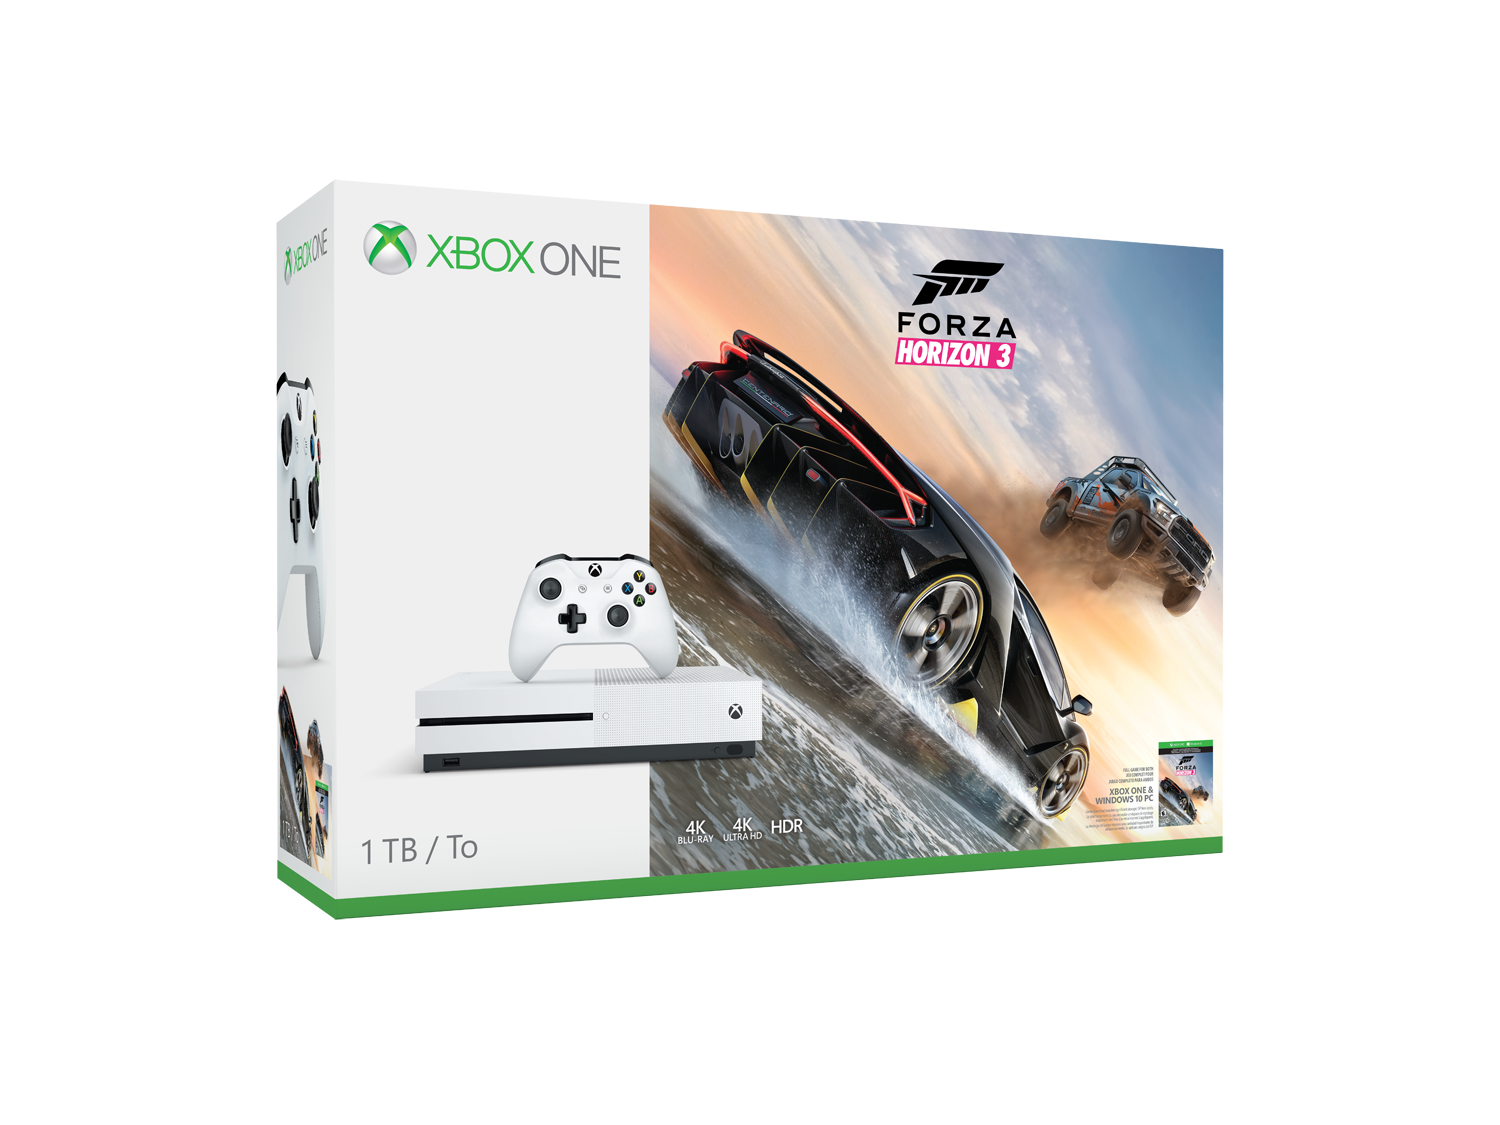 new xbox one s bundle with forza horizon 3 revealed by. Black Bedroom Furniture Sets. Home Design Ideas